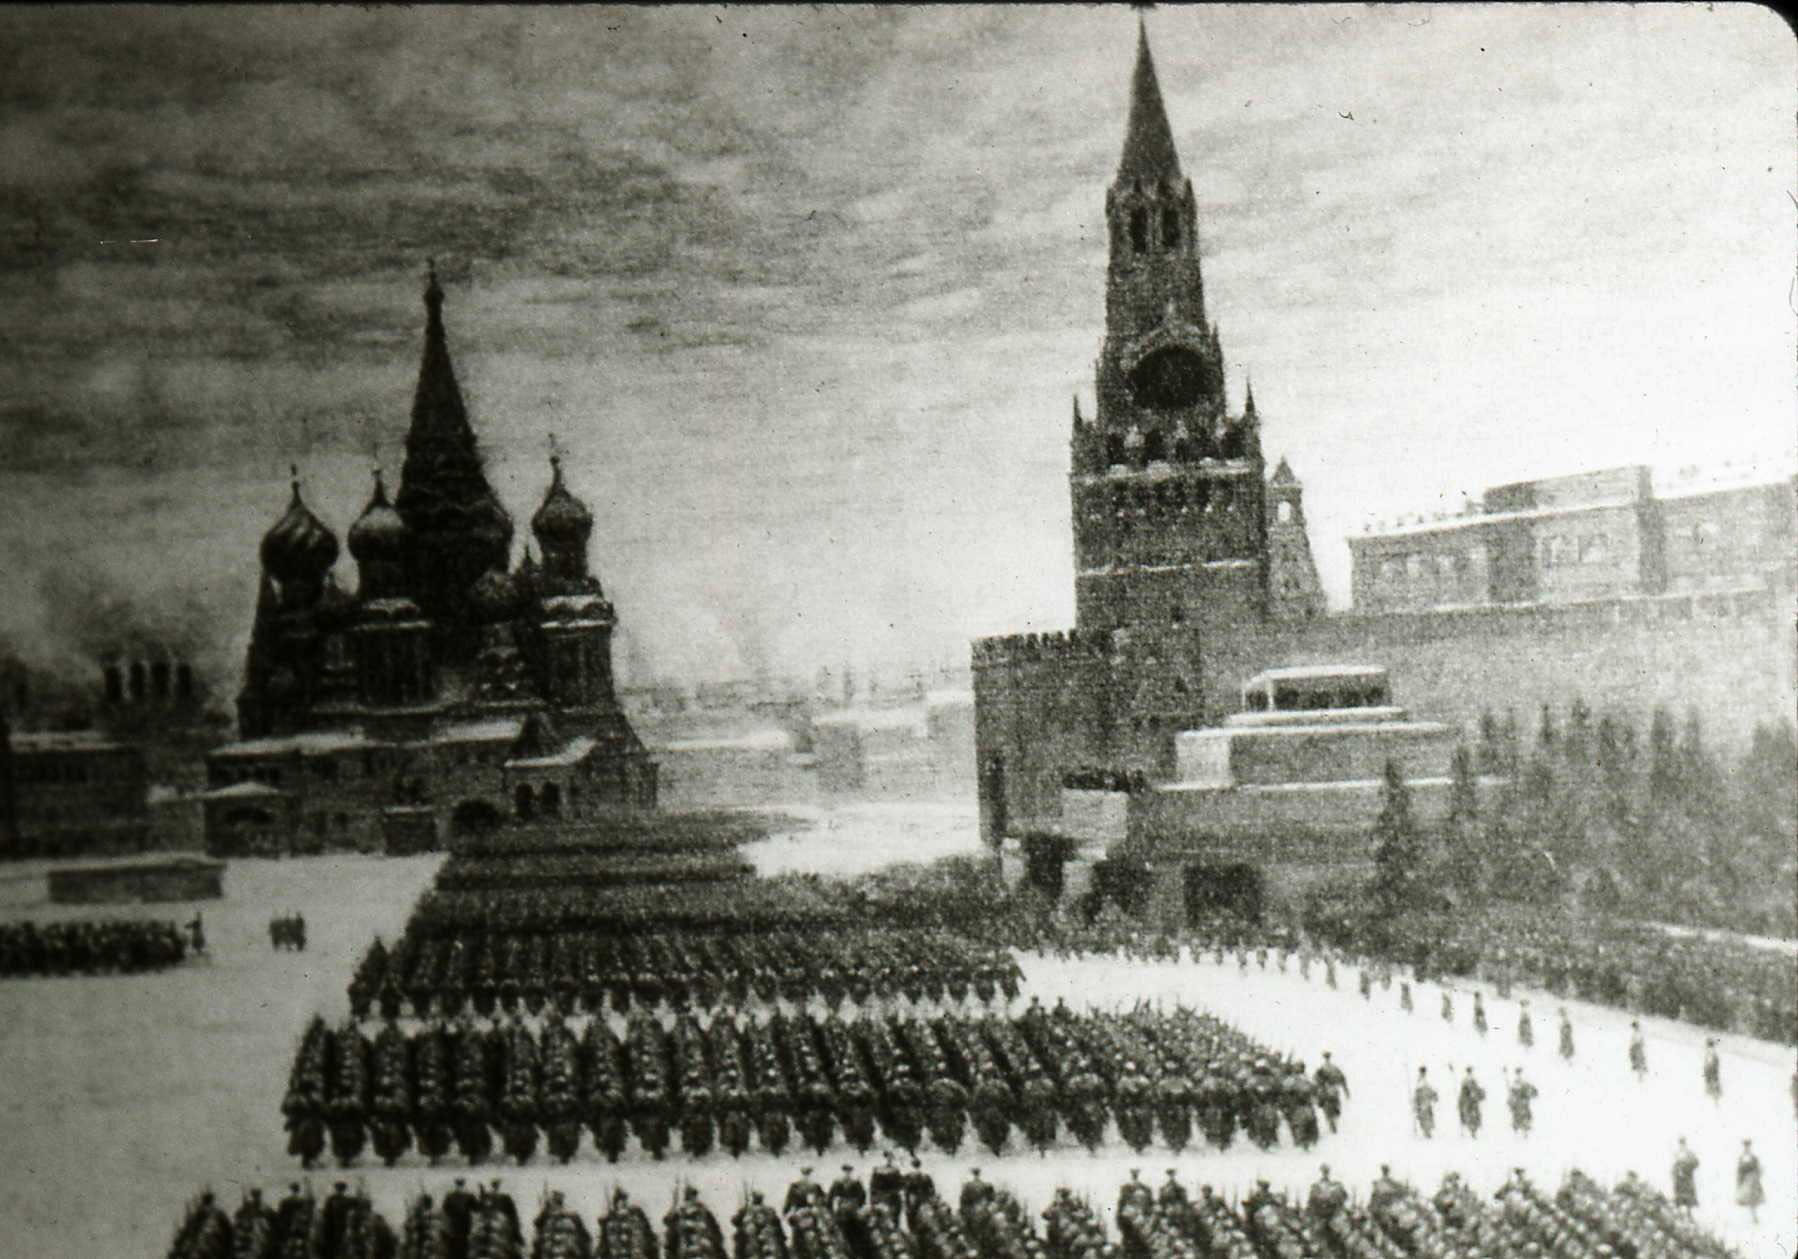 A howling blizzard can't stop the military parade on Red Square in Moscow on Red Army Day, 1941.